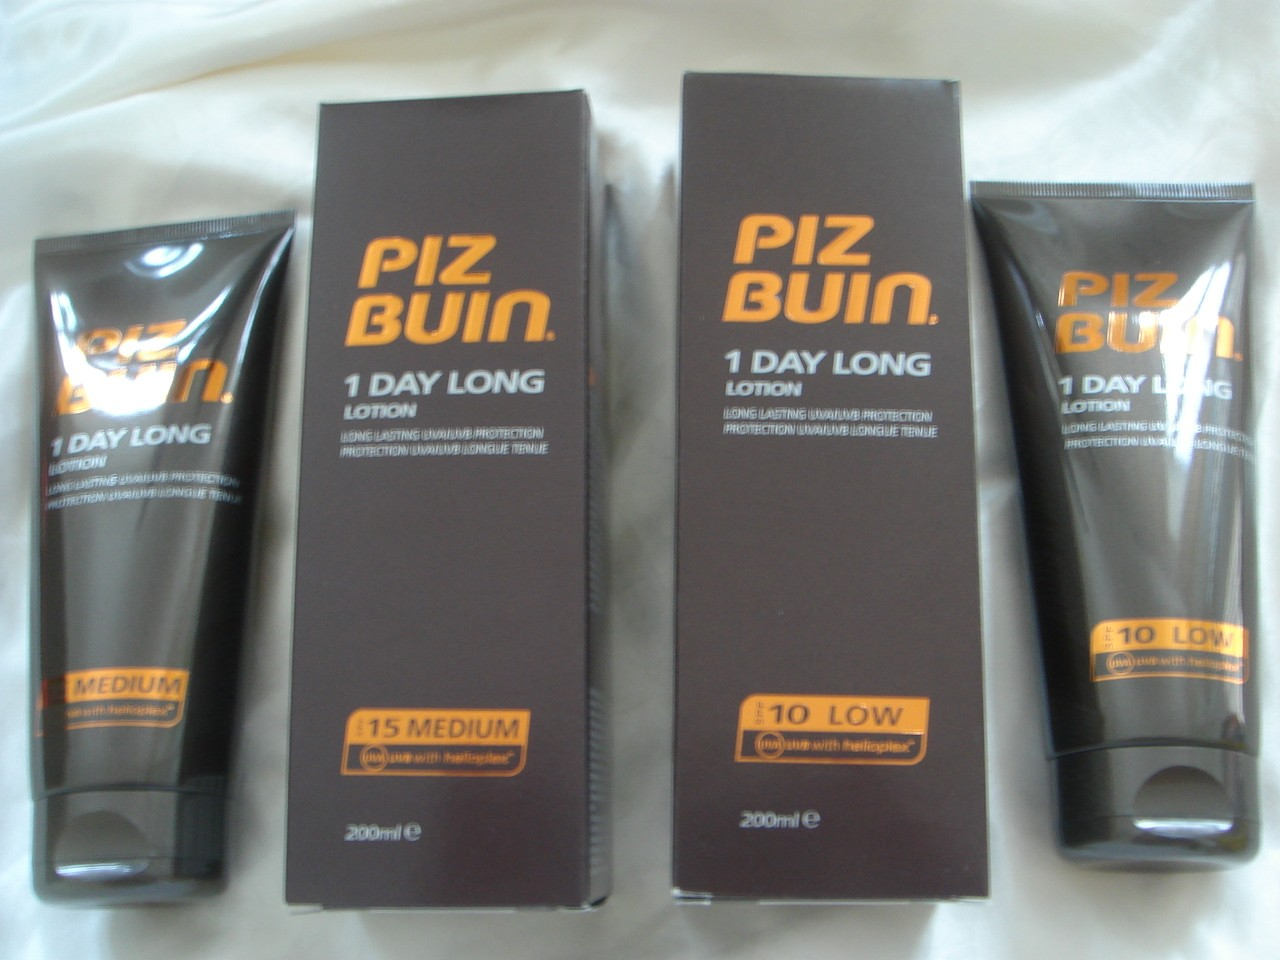 Any-2-PIZ-BUIN-1-DAY-LONG-Sun-tan-Lotions-SPF-30-15-10-or-AFTERSUN-200ml-each